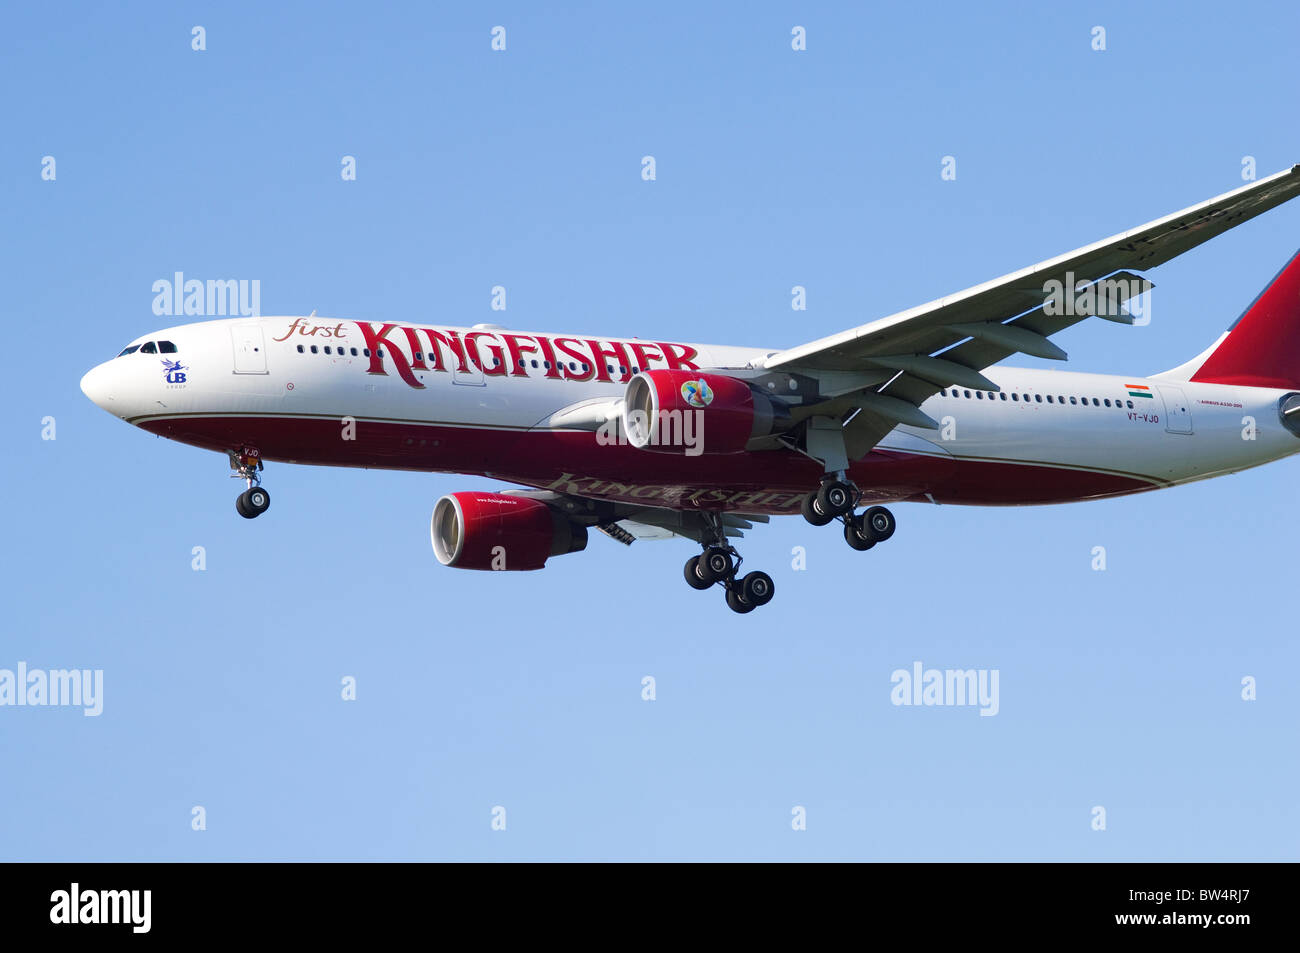 Boeing 777 Operated By Kingfisher Airlines On Approach For Landing At London Heathrow Airport